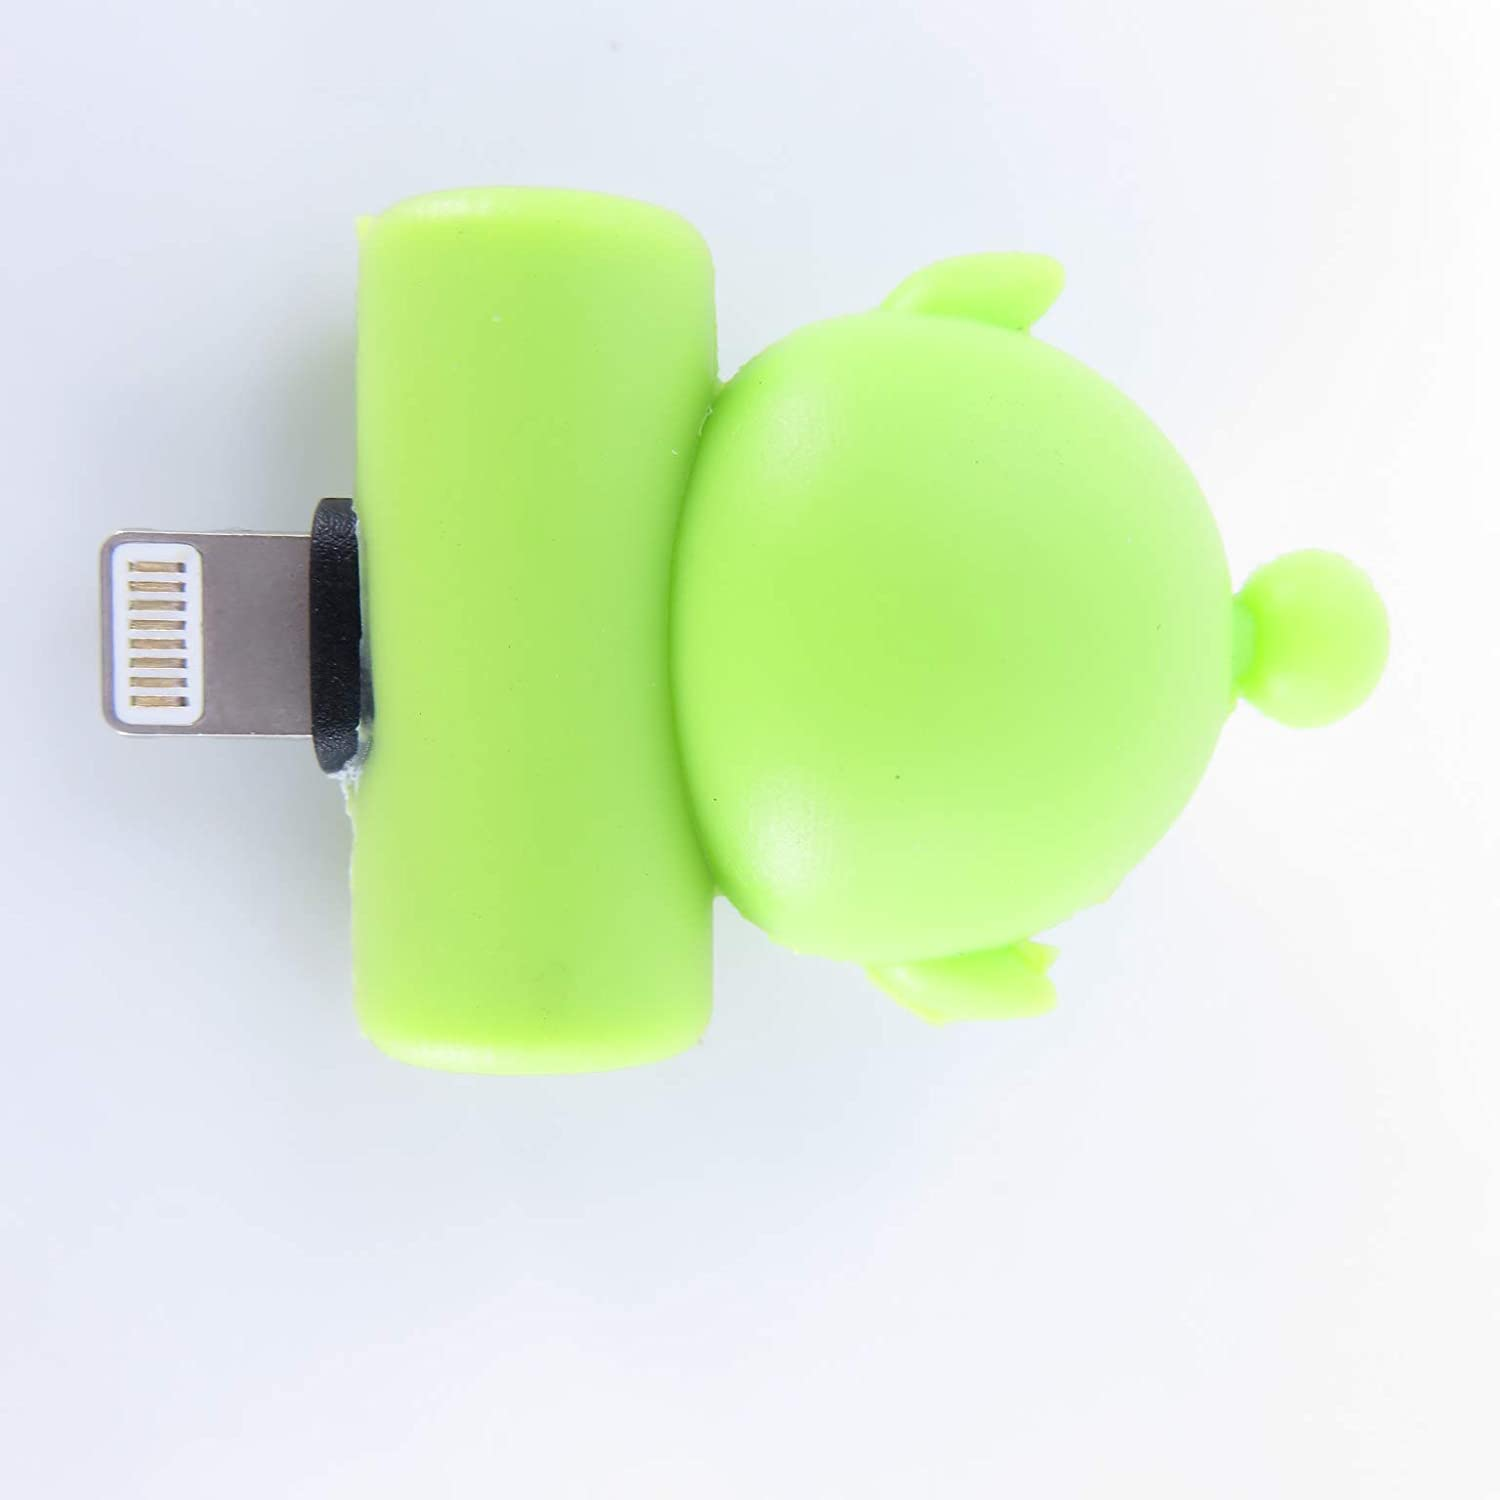 Goblin Cute Cartoon Headphone Jack Adapter for iPhone X XS Max XR 7 8 Plus Splitter Dual IP Port Aux Audio /& Charging /& Calling /& Sync Cable Connector Earphone Charger Adapter